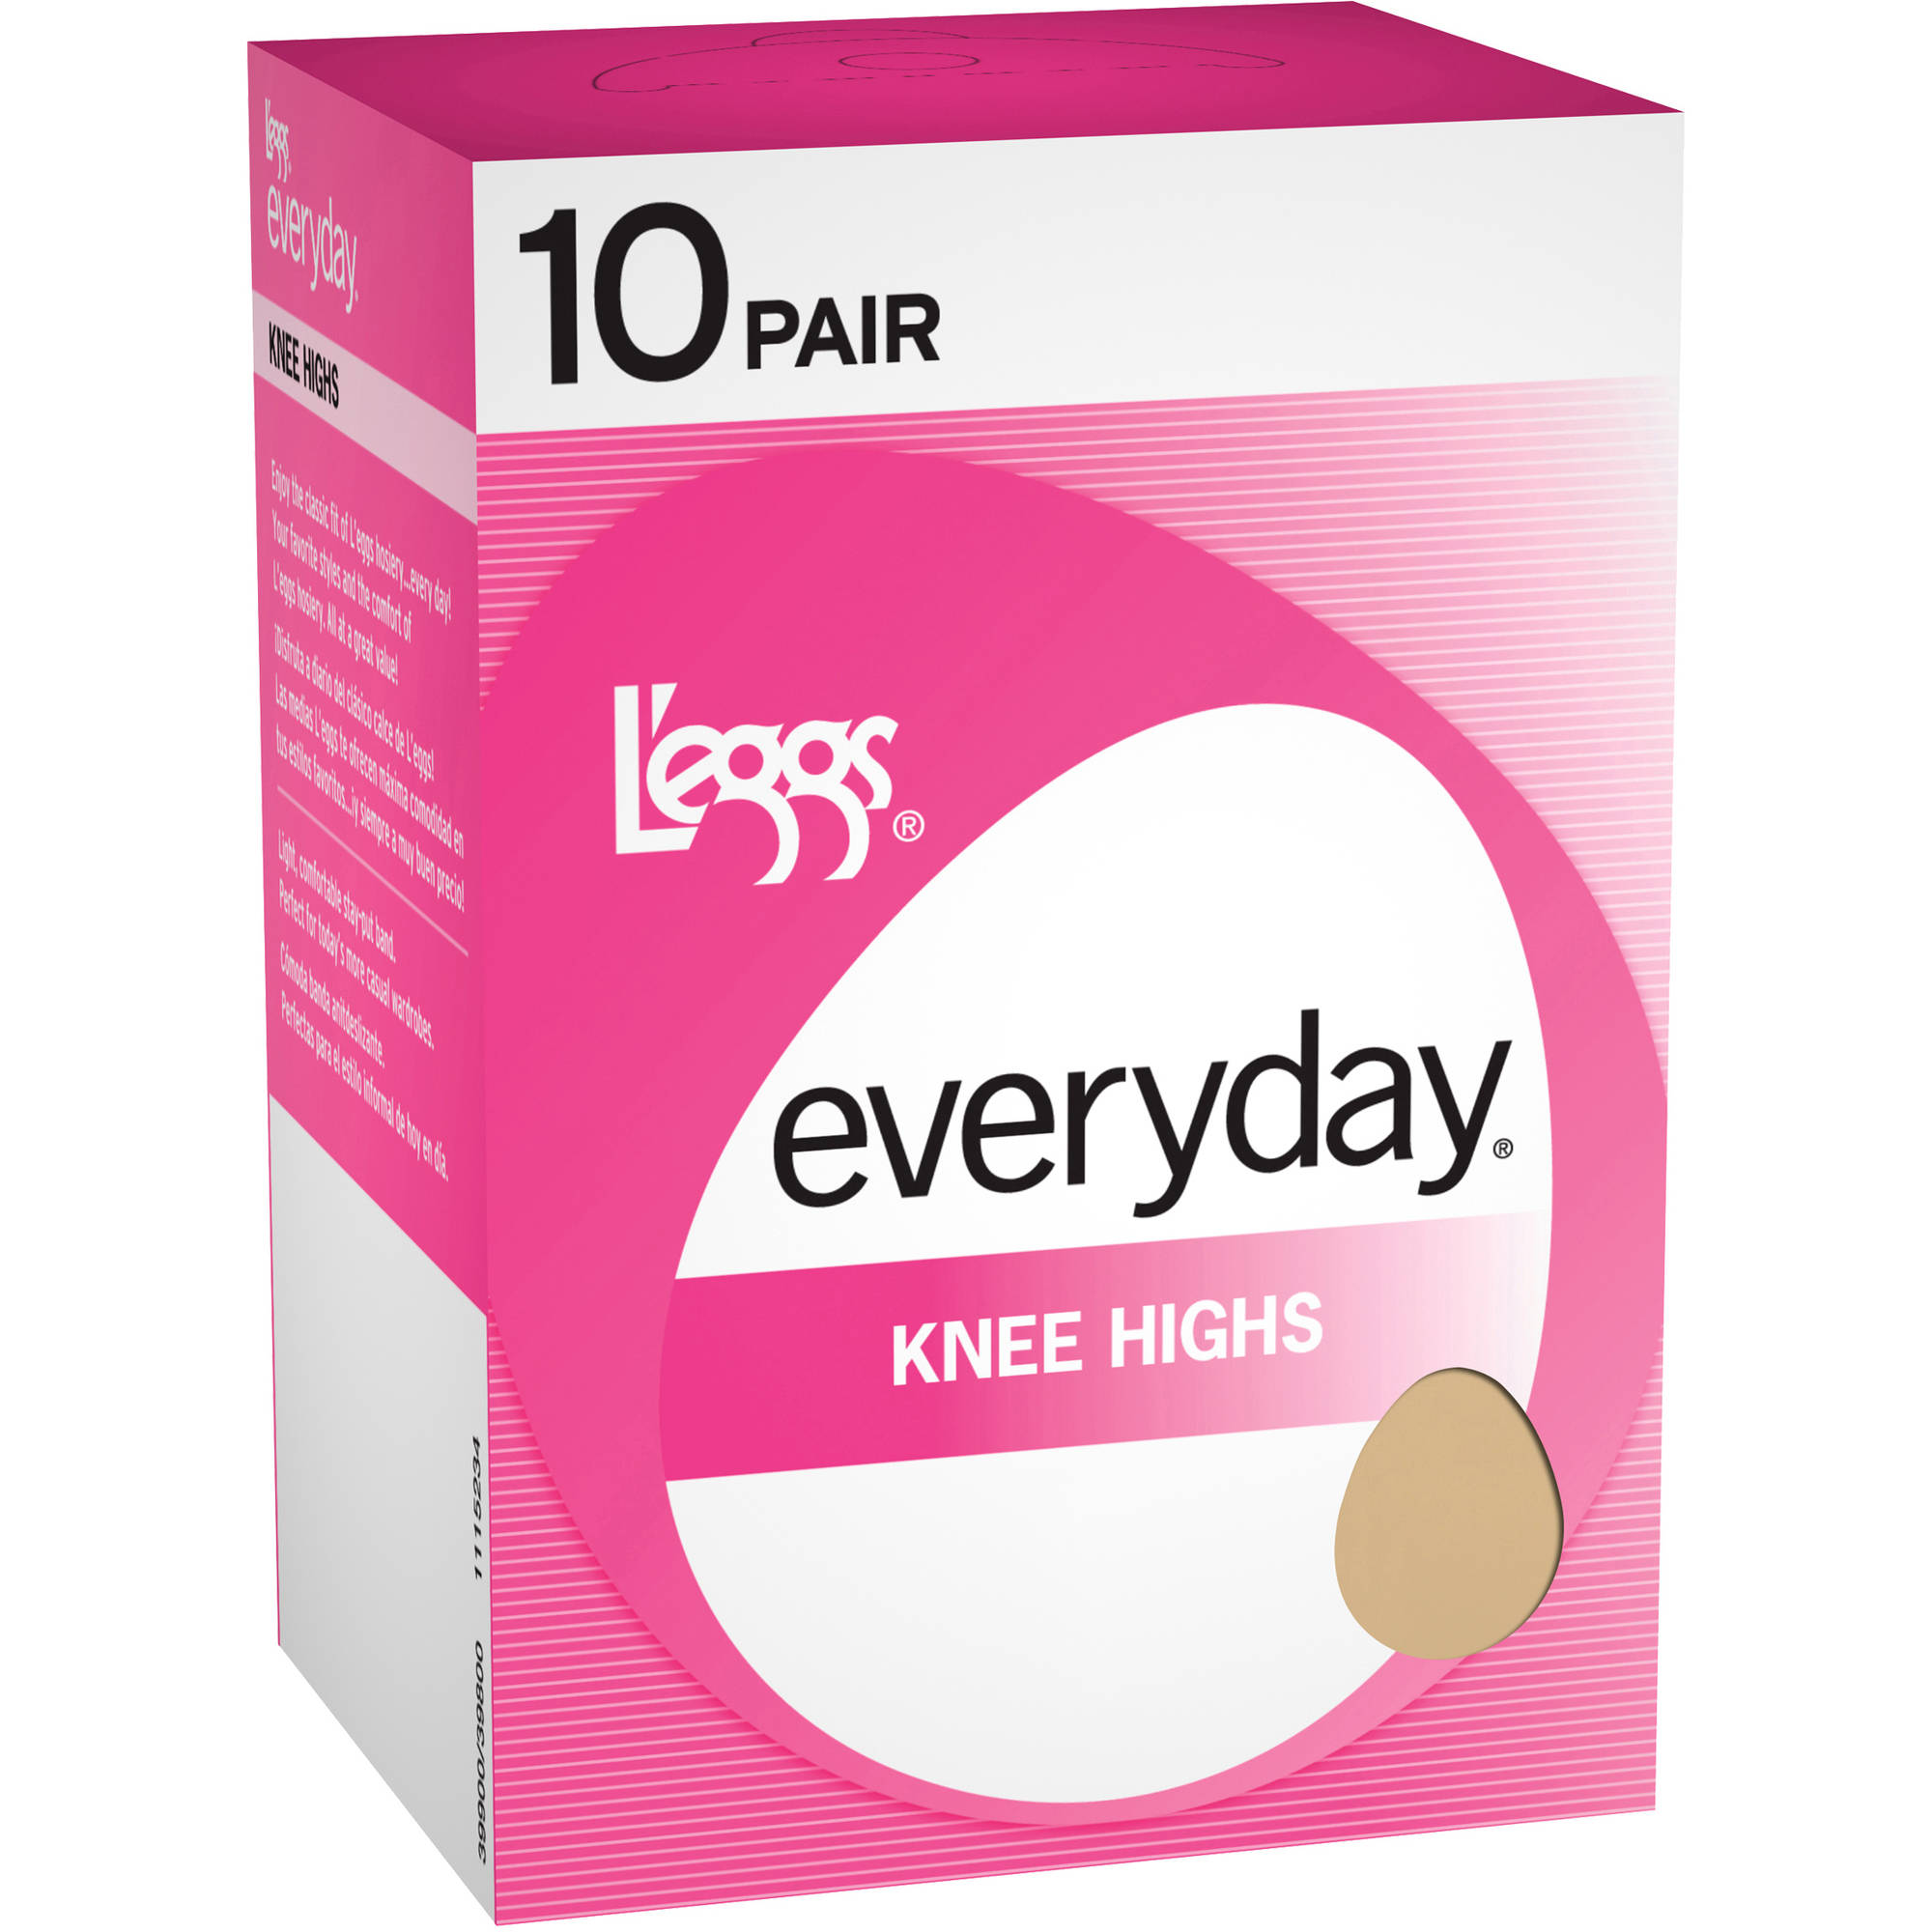 L'eggs - Women's Everyday Knee High Hosiery, 10-Pack